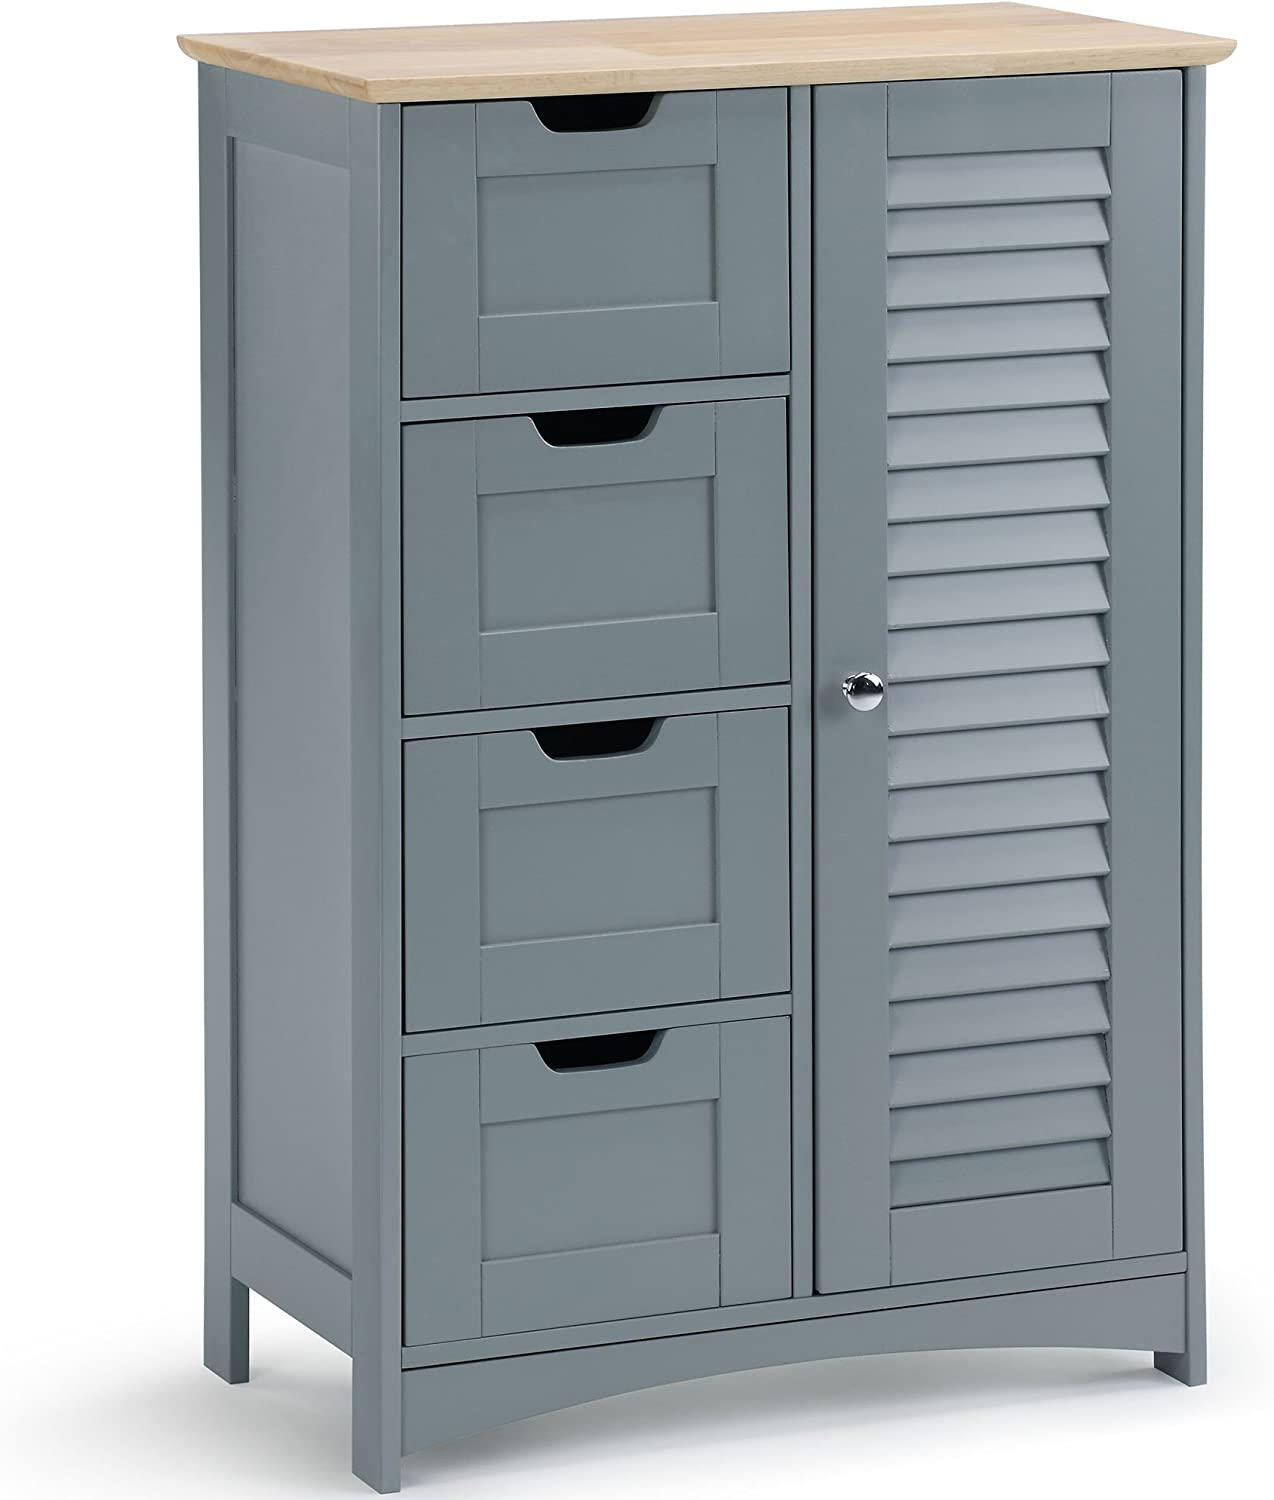 VonHaus Free Standing Bathroom Cabinet With 7 Drawers And Adjustable  Shelving – Grey Cupboard For Bathrooms